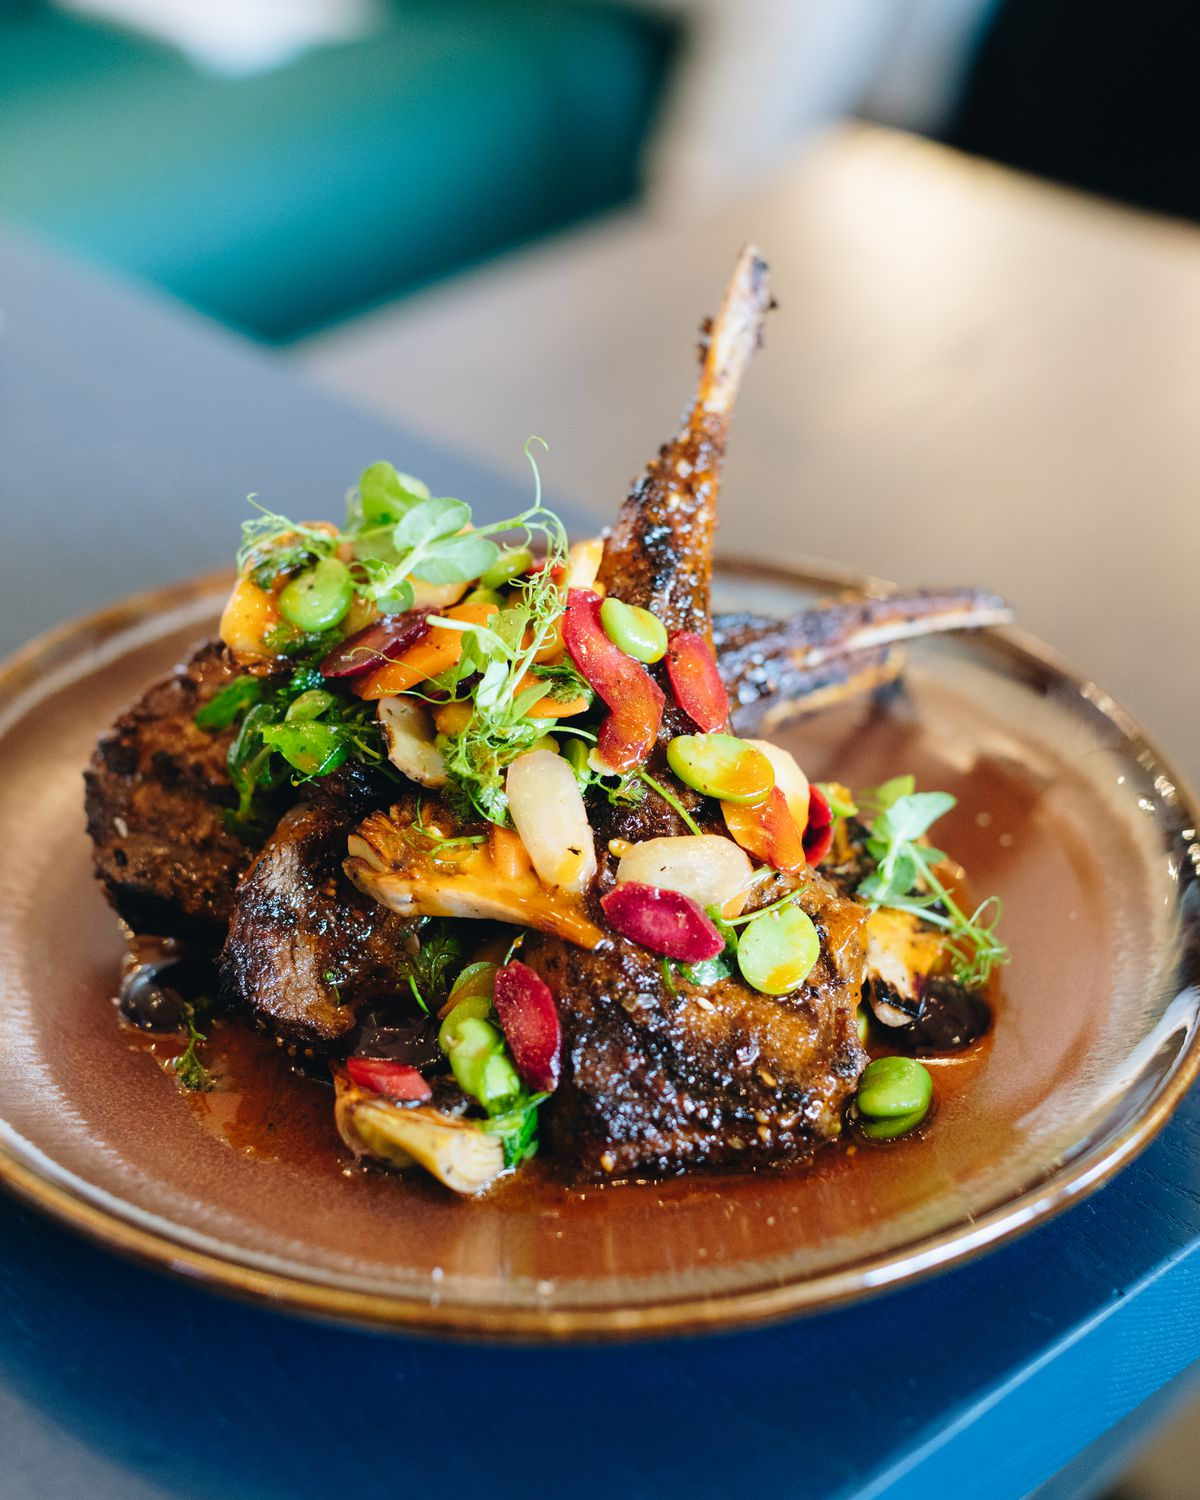 Grilled lamb chops topped with fava beans and various greens, placed on a brown ceramic plate